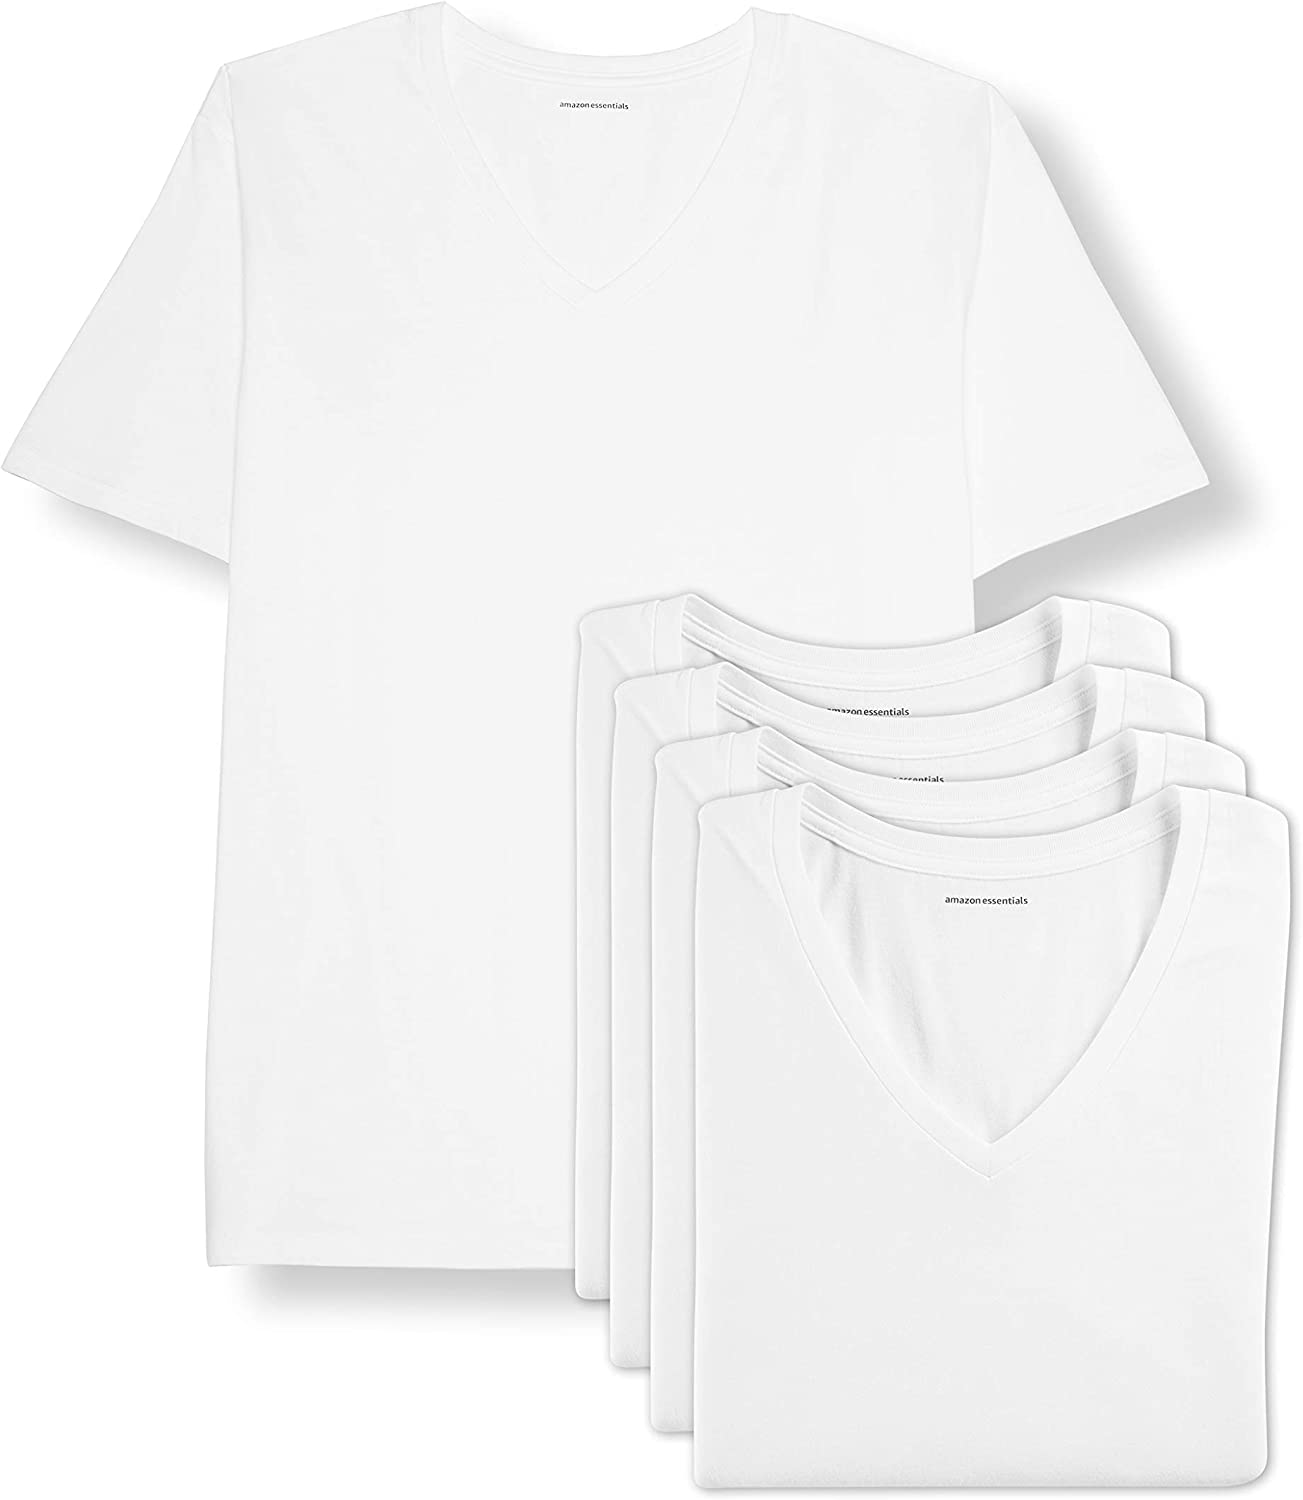 Amazon Essentials Men's Big & Tall 5-Pack V-Neck Undershirts fit by DXL